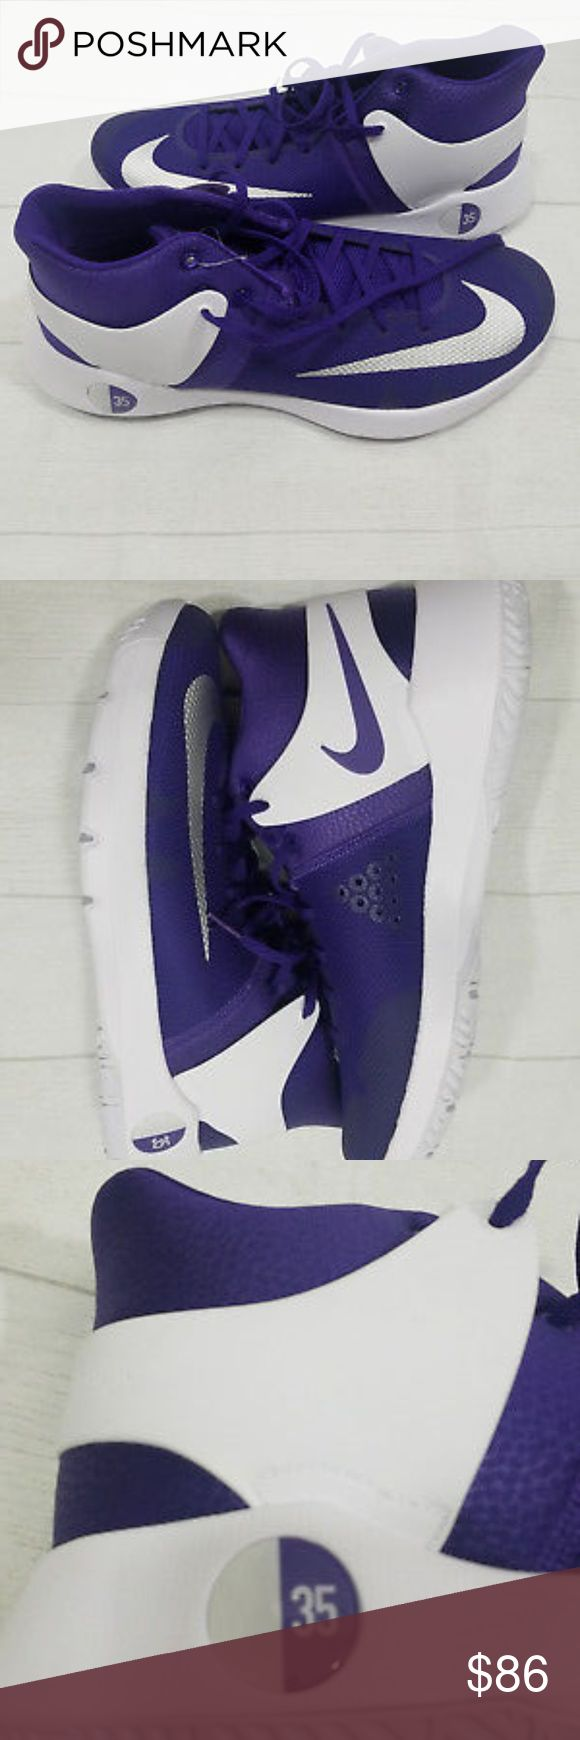 Nike KD Trey 5 IV Purple Basketball Kevin Durant Nike  KD Trey 5 IV Purple  Basketball Shoes  Size 12.5  Kevin Durant  New No Tags Nike Shoes Sneakers